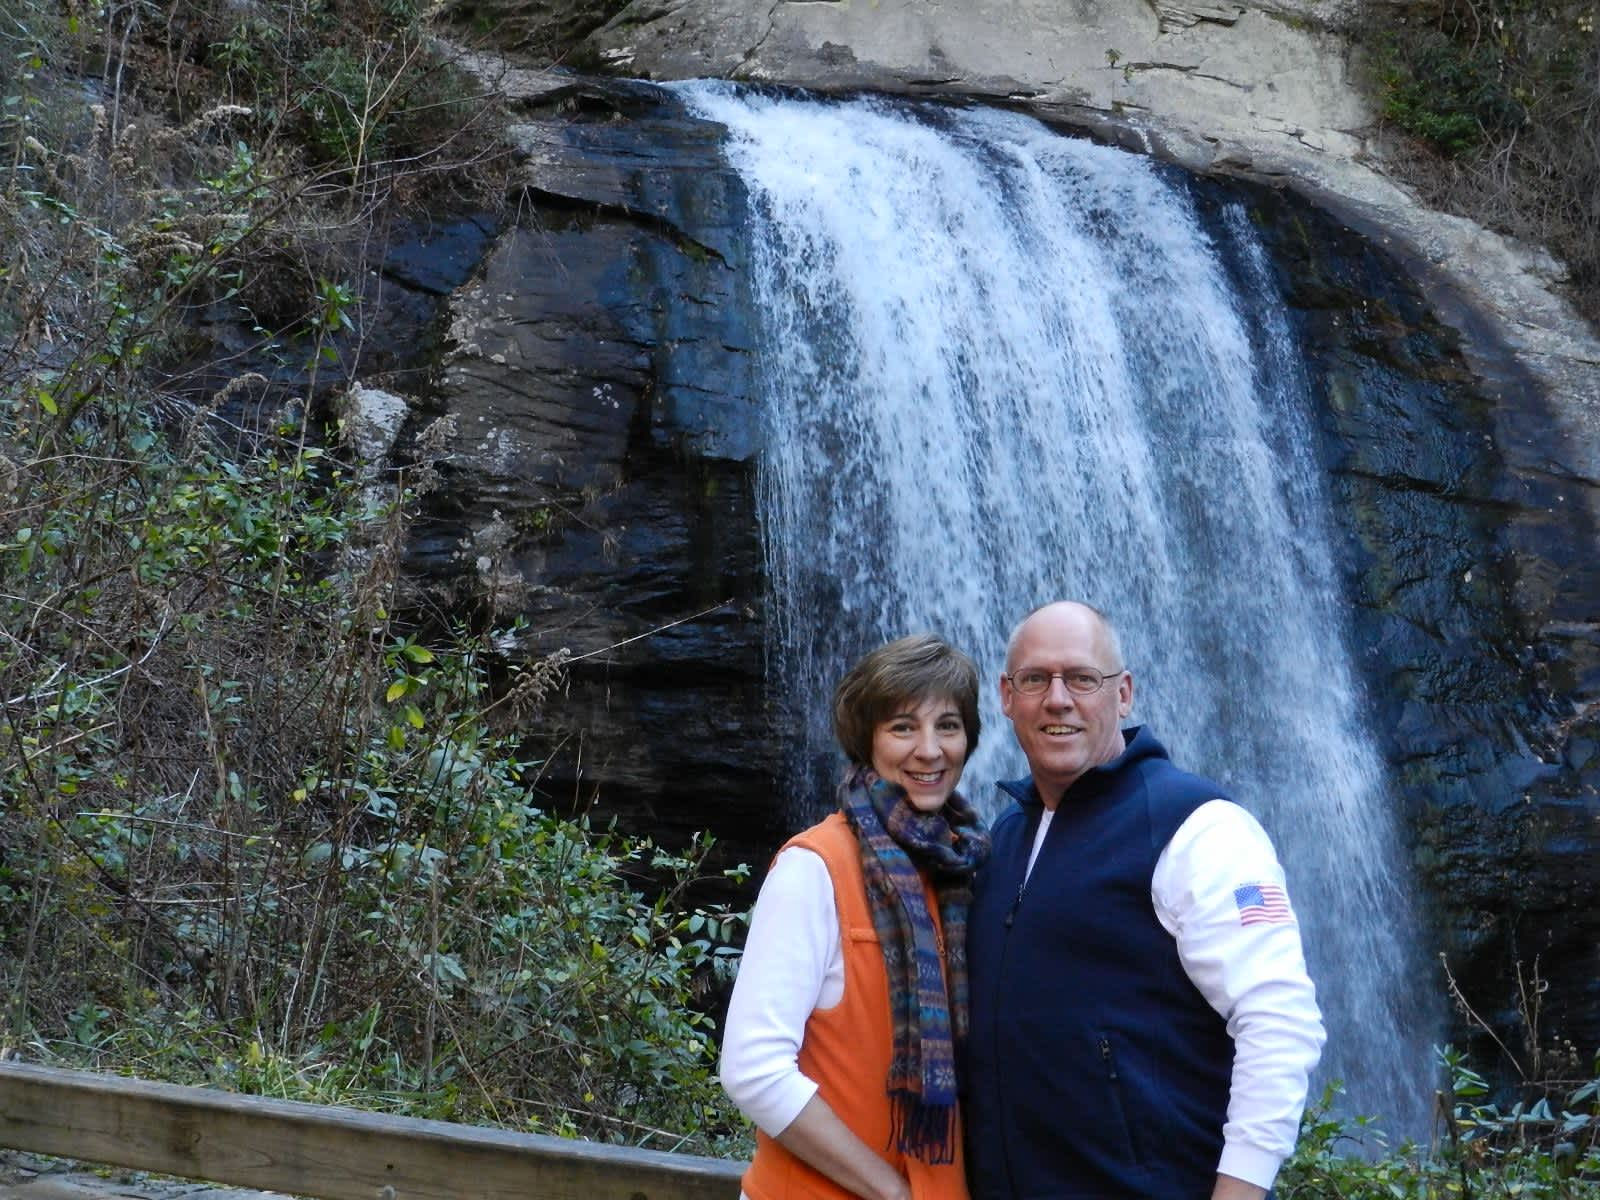 David & Cindy from Brevard, North Carolina, United States